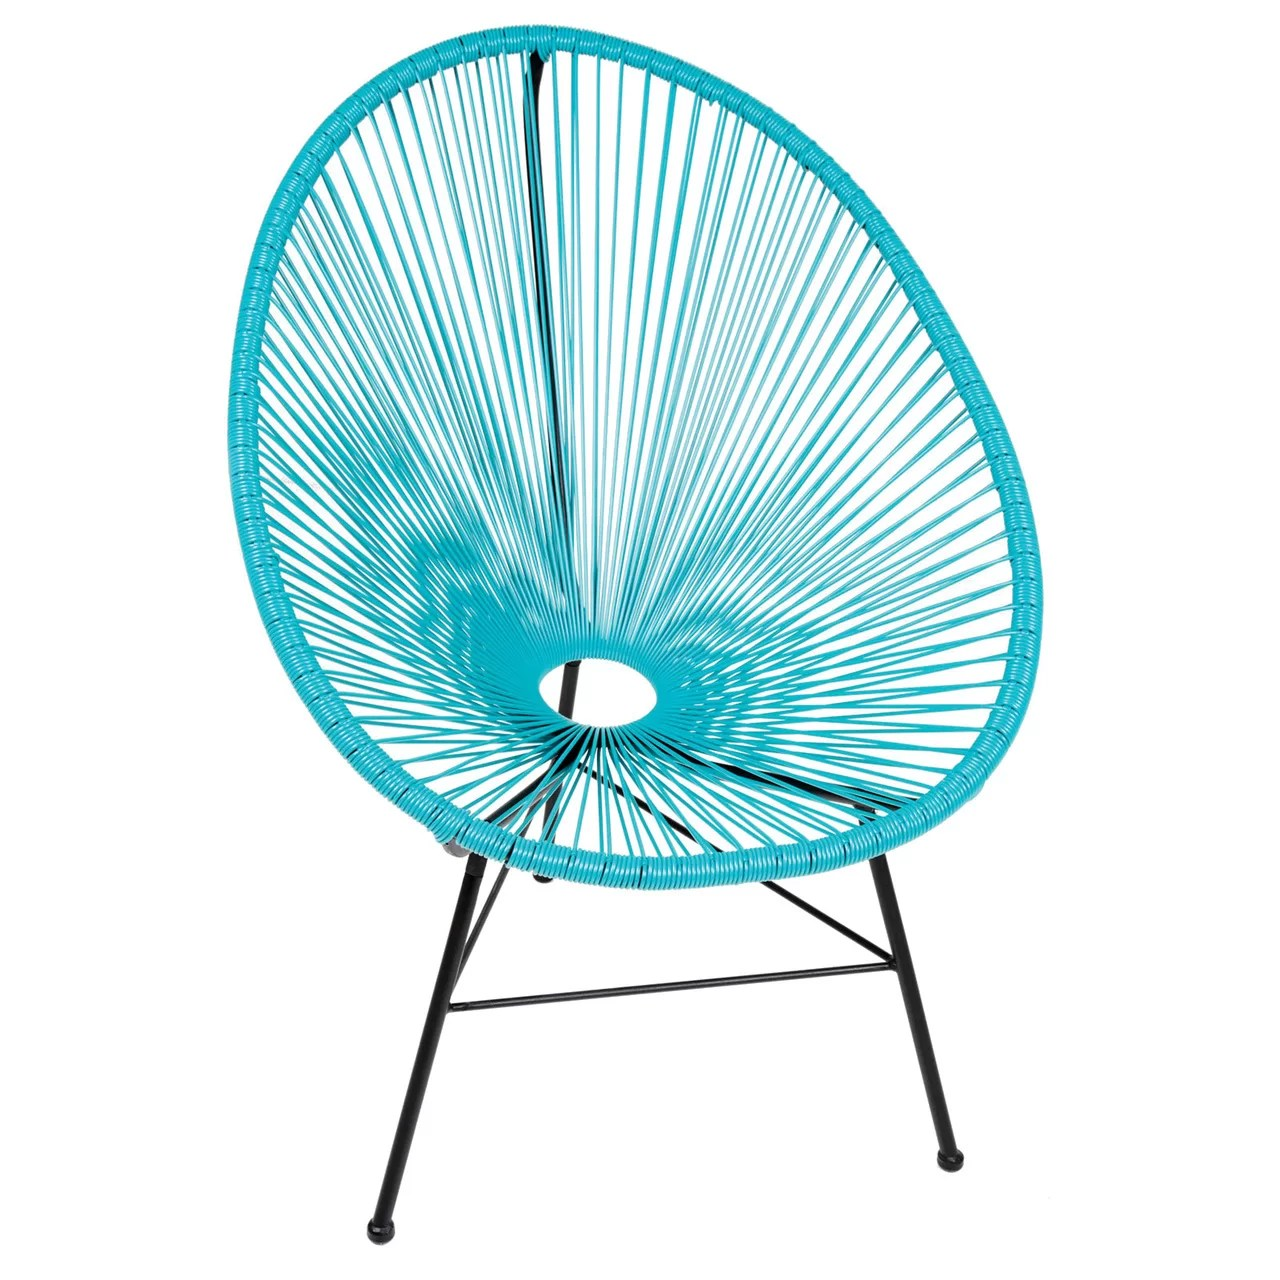 acapulco lounge chair teen room chairs wire basket indoor outdoor stackable